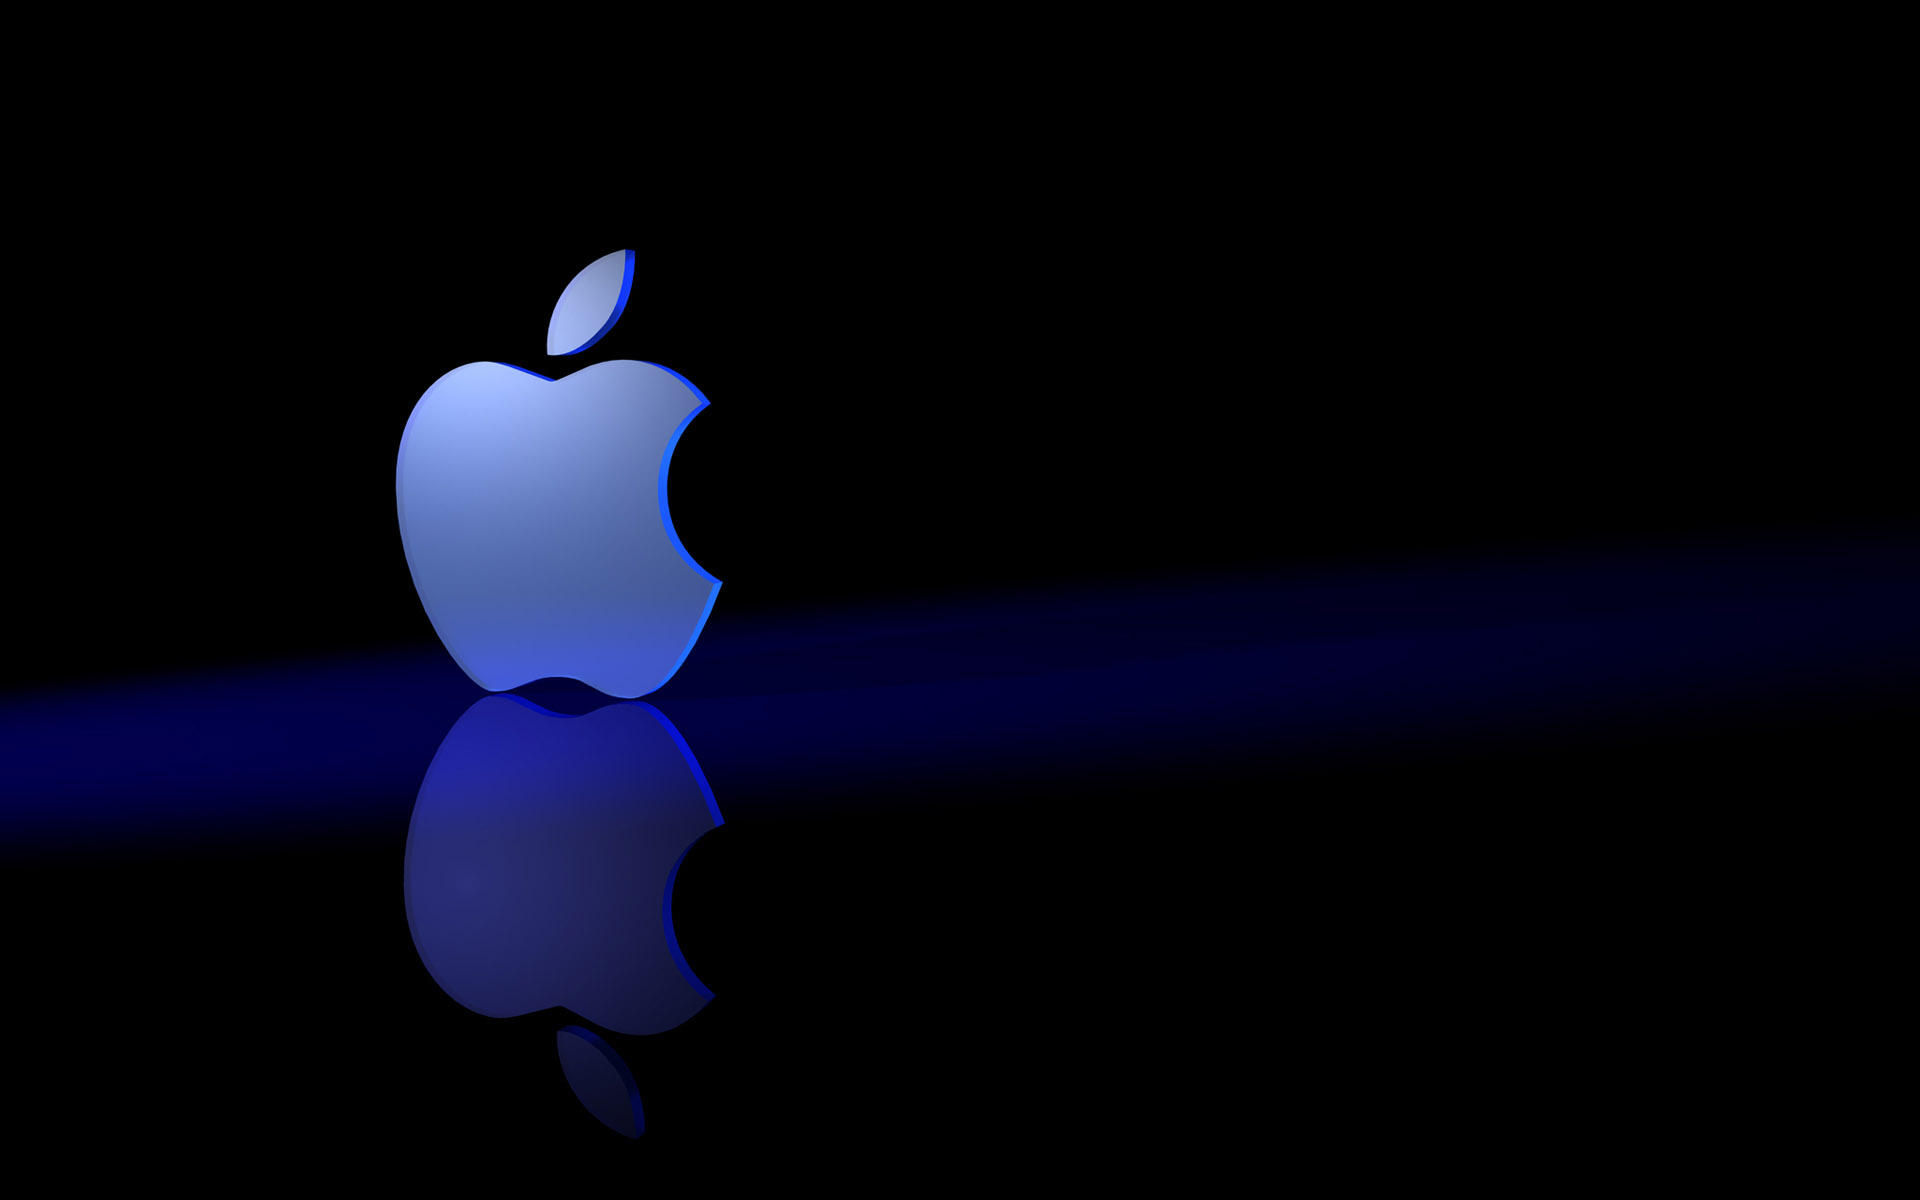 HD Wallpapers Apple Glass